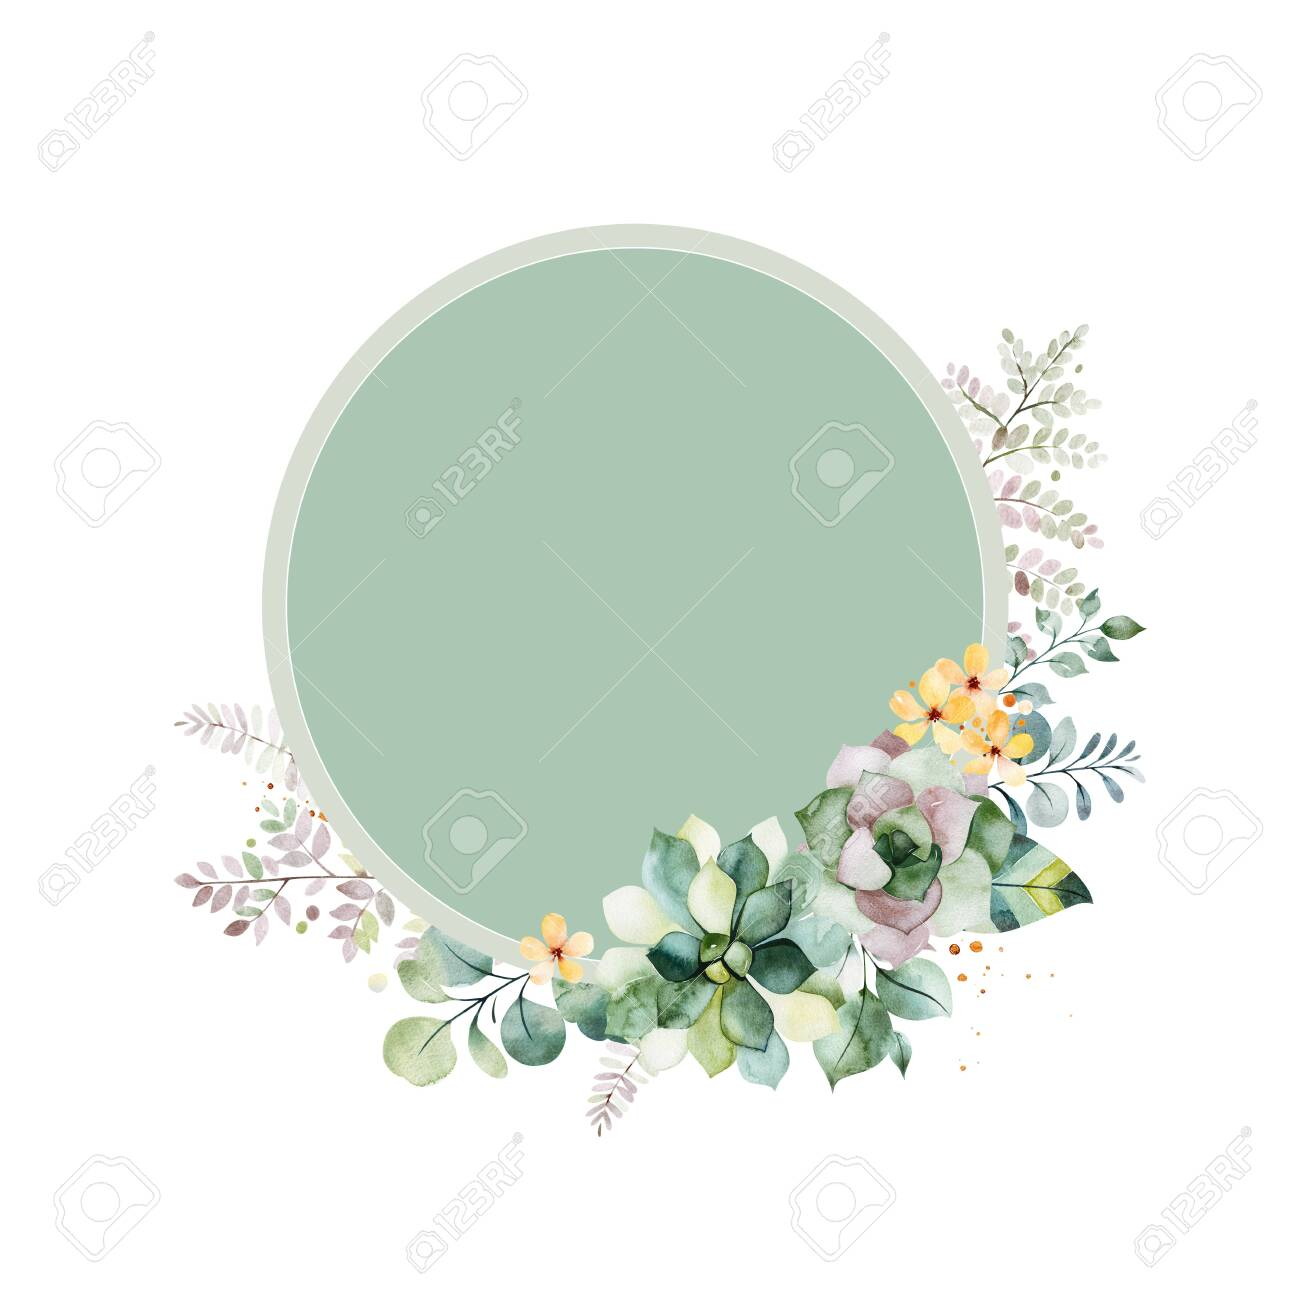 watercolor green illustration pre made greeting card foliage